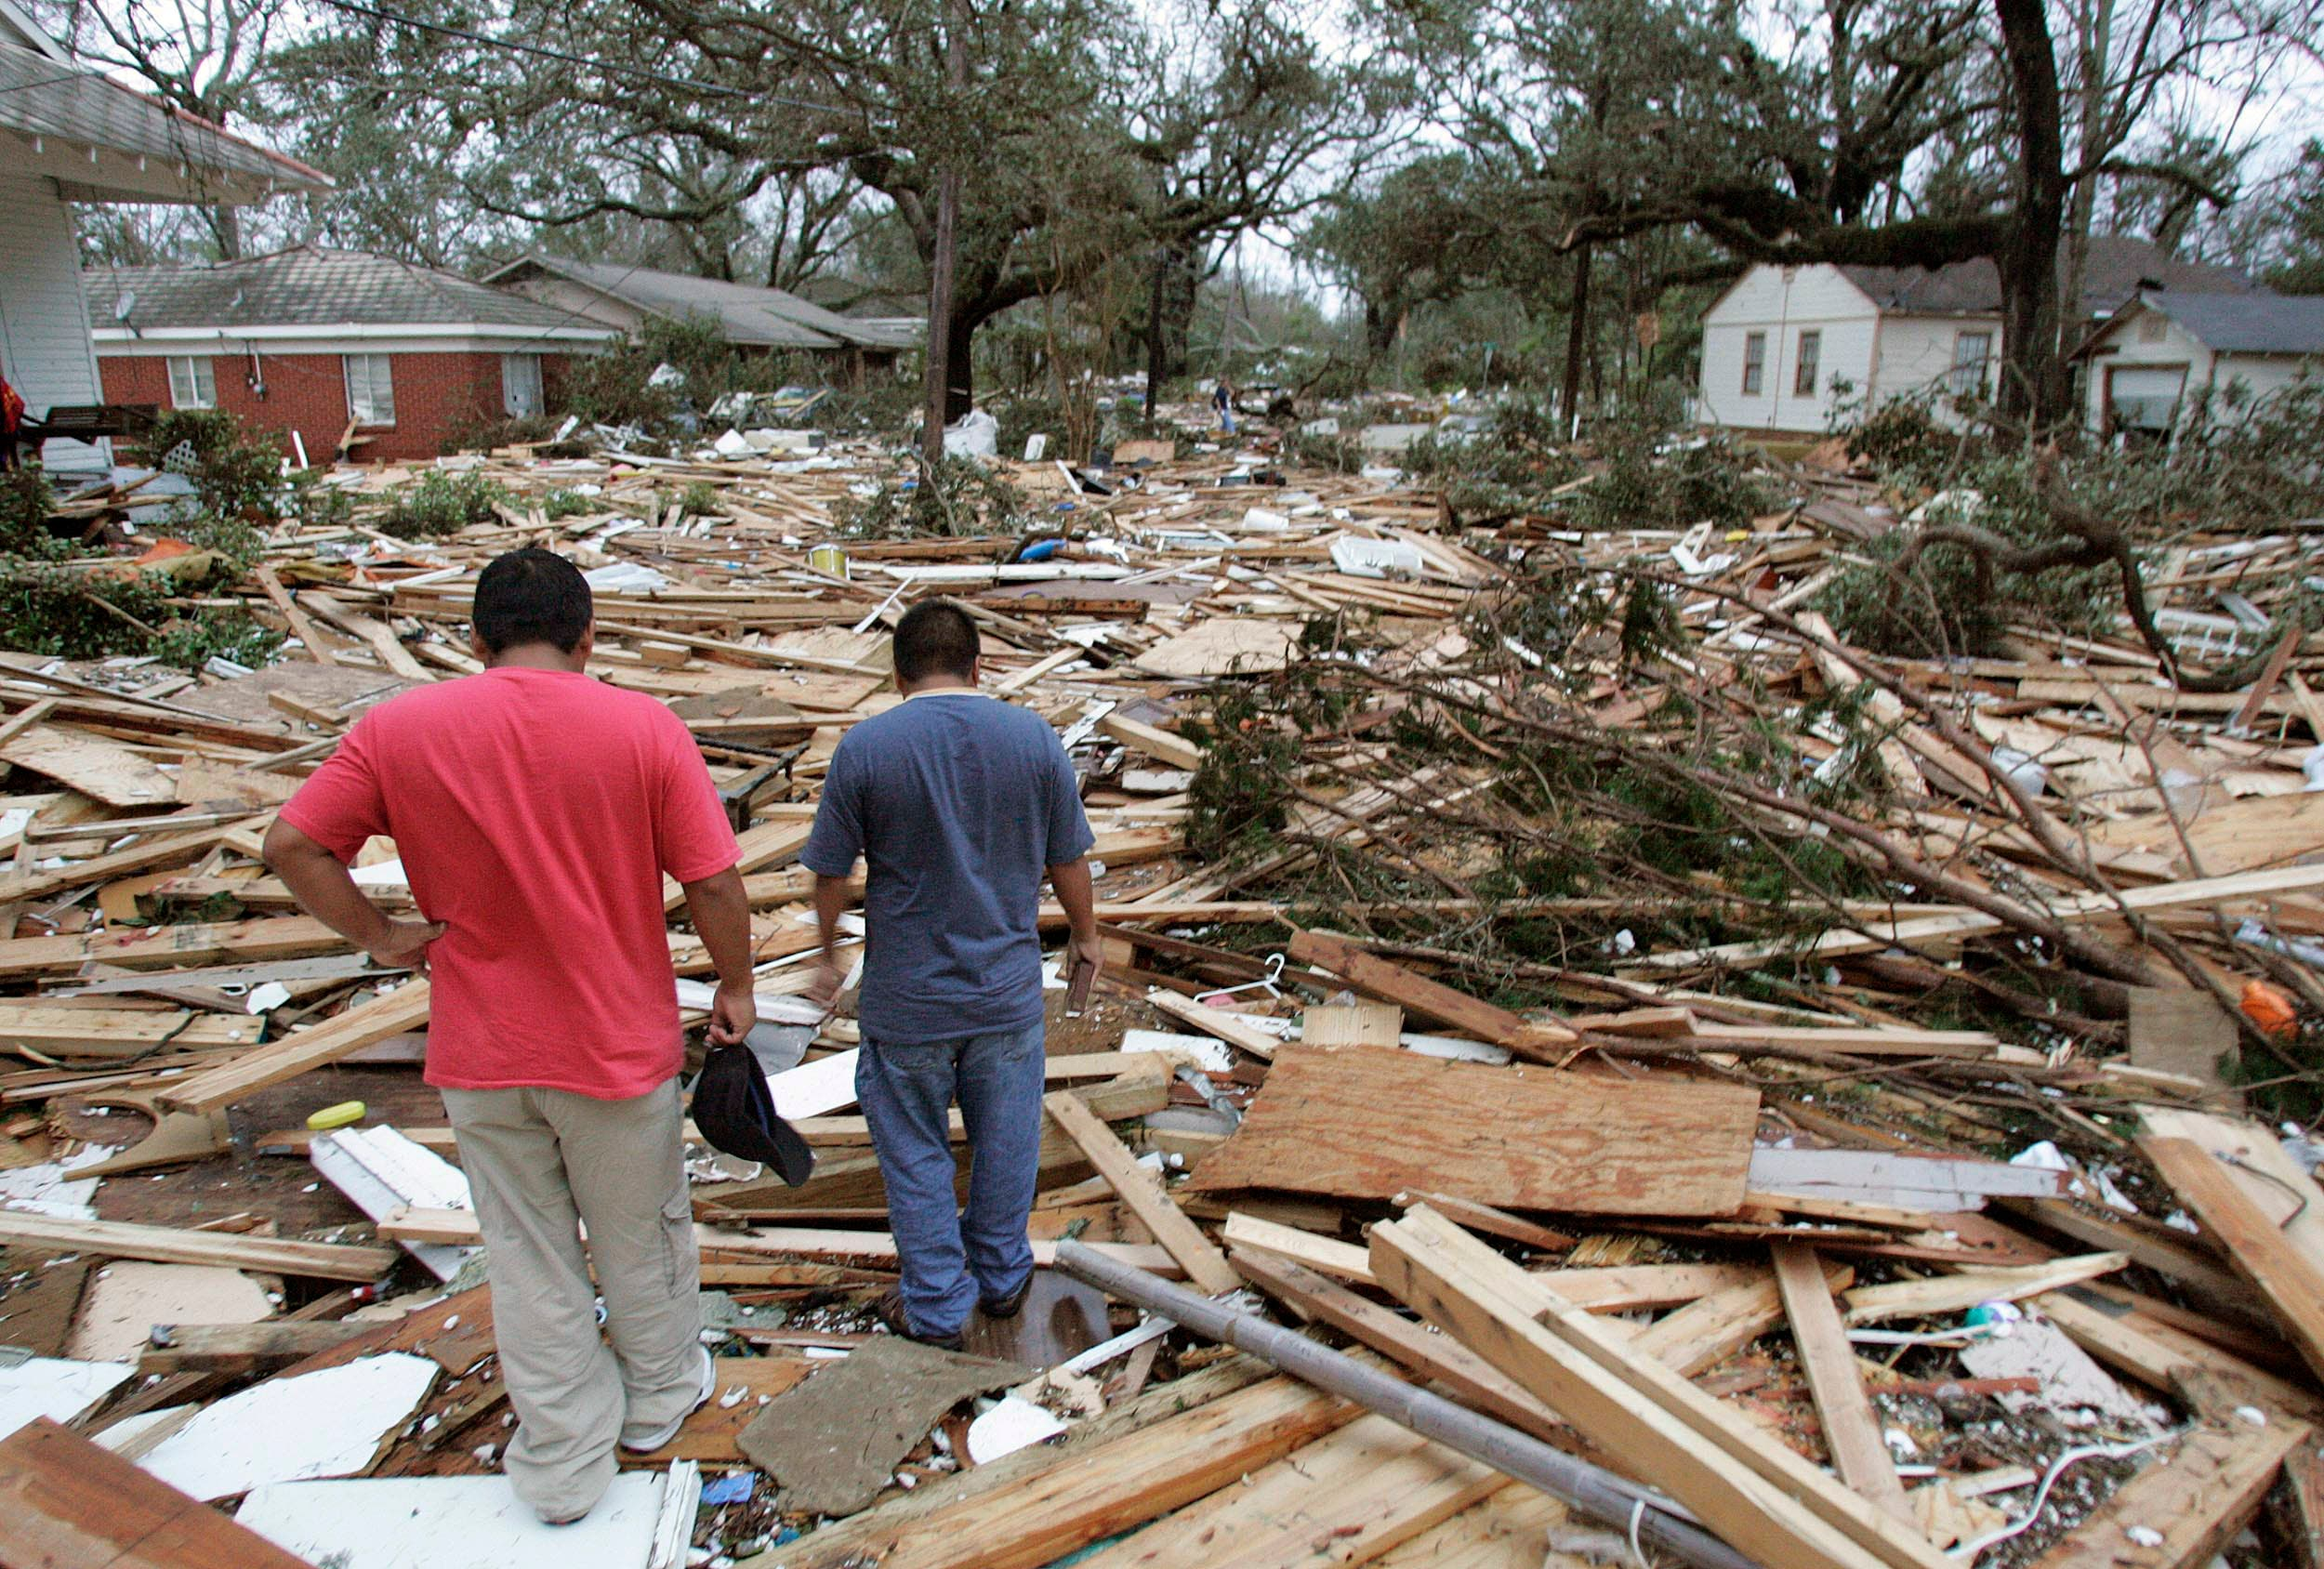 People walk amidst the remains of the St Charles Condominiums and Sadler Apartments in Biloxi, Mississippi, August 29, 2005, which were pushed up between the private homes on St Charles Street by the storm surge from Hurricane Katrina. (Reuters)